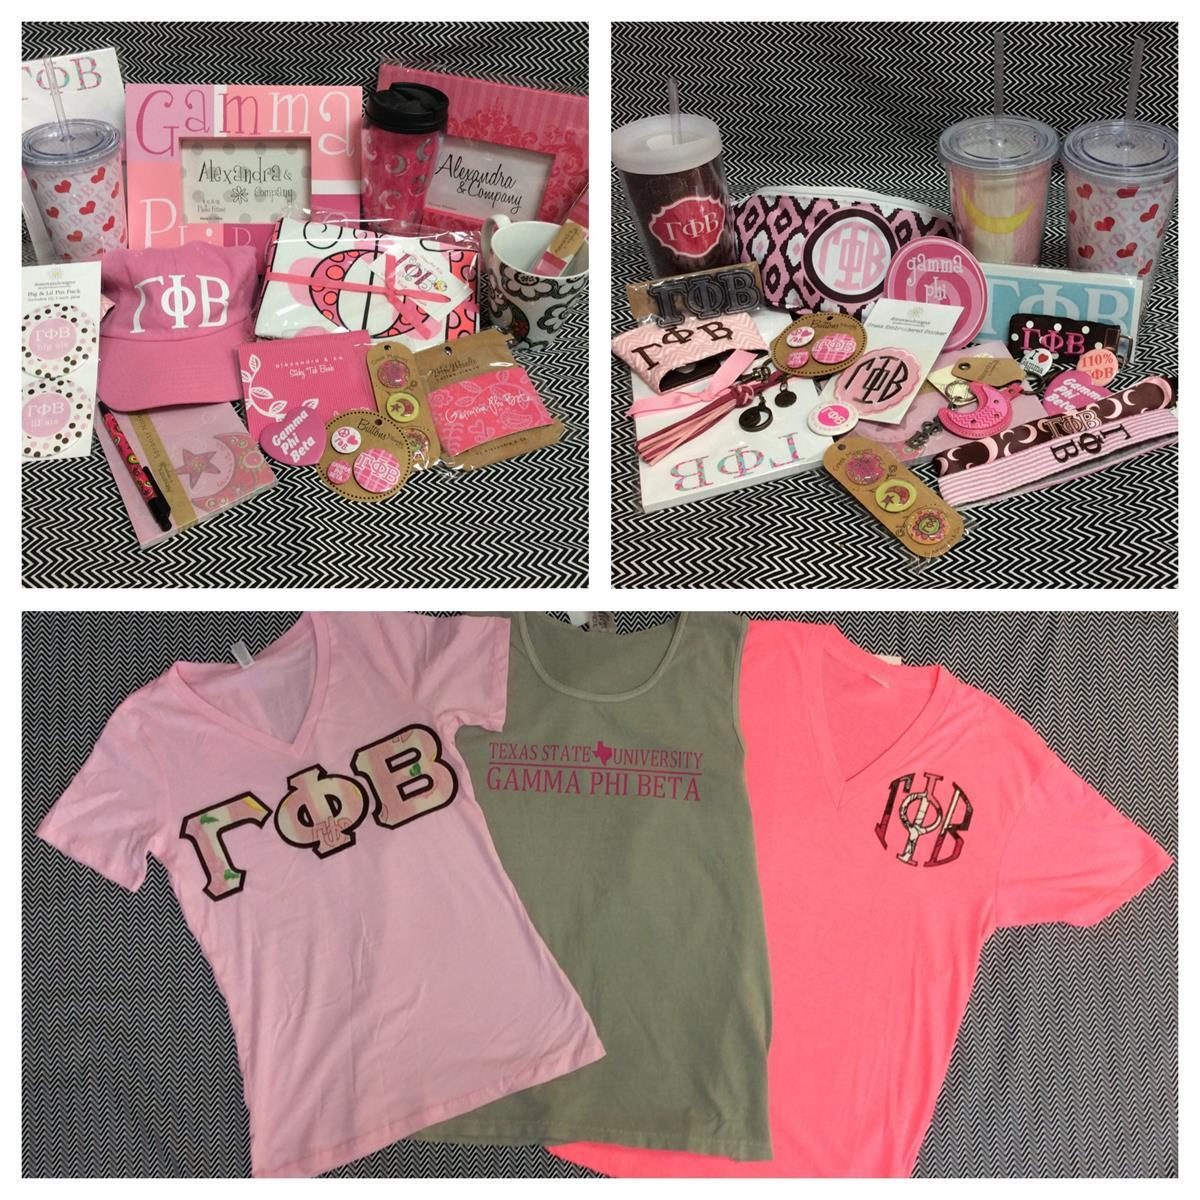 Gamma Phi Beta Custom Embroidery T-shirts Accessories Campus Gear Stickers